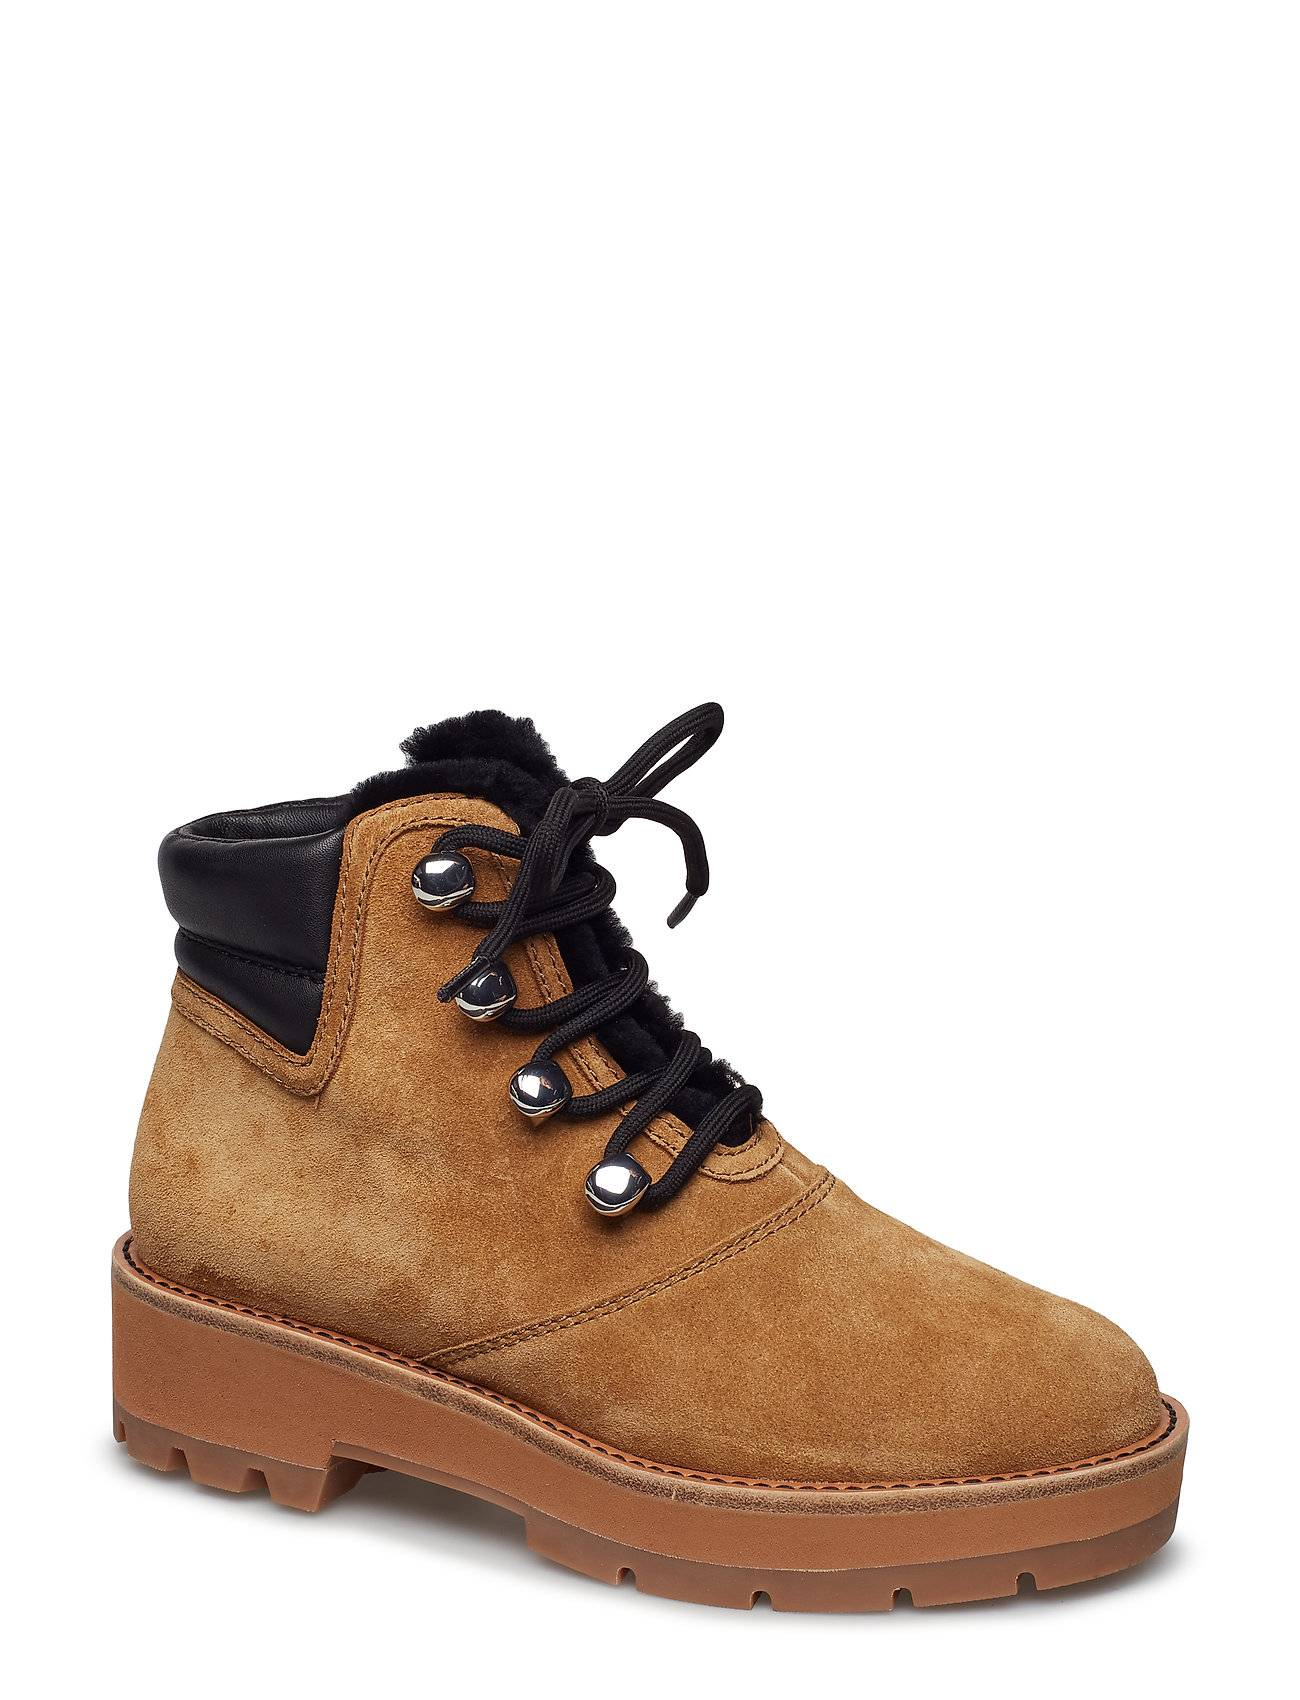 3.1 Phillip Lim Dylan - Shearling Lace Up Hiking Boot